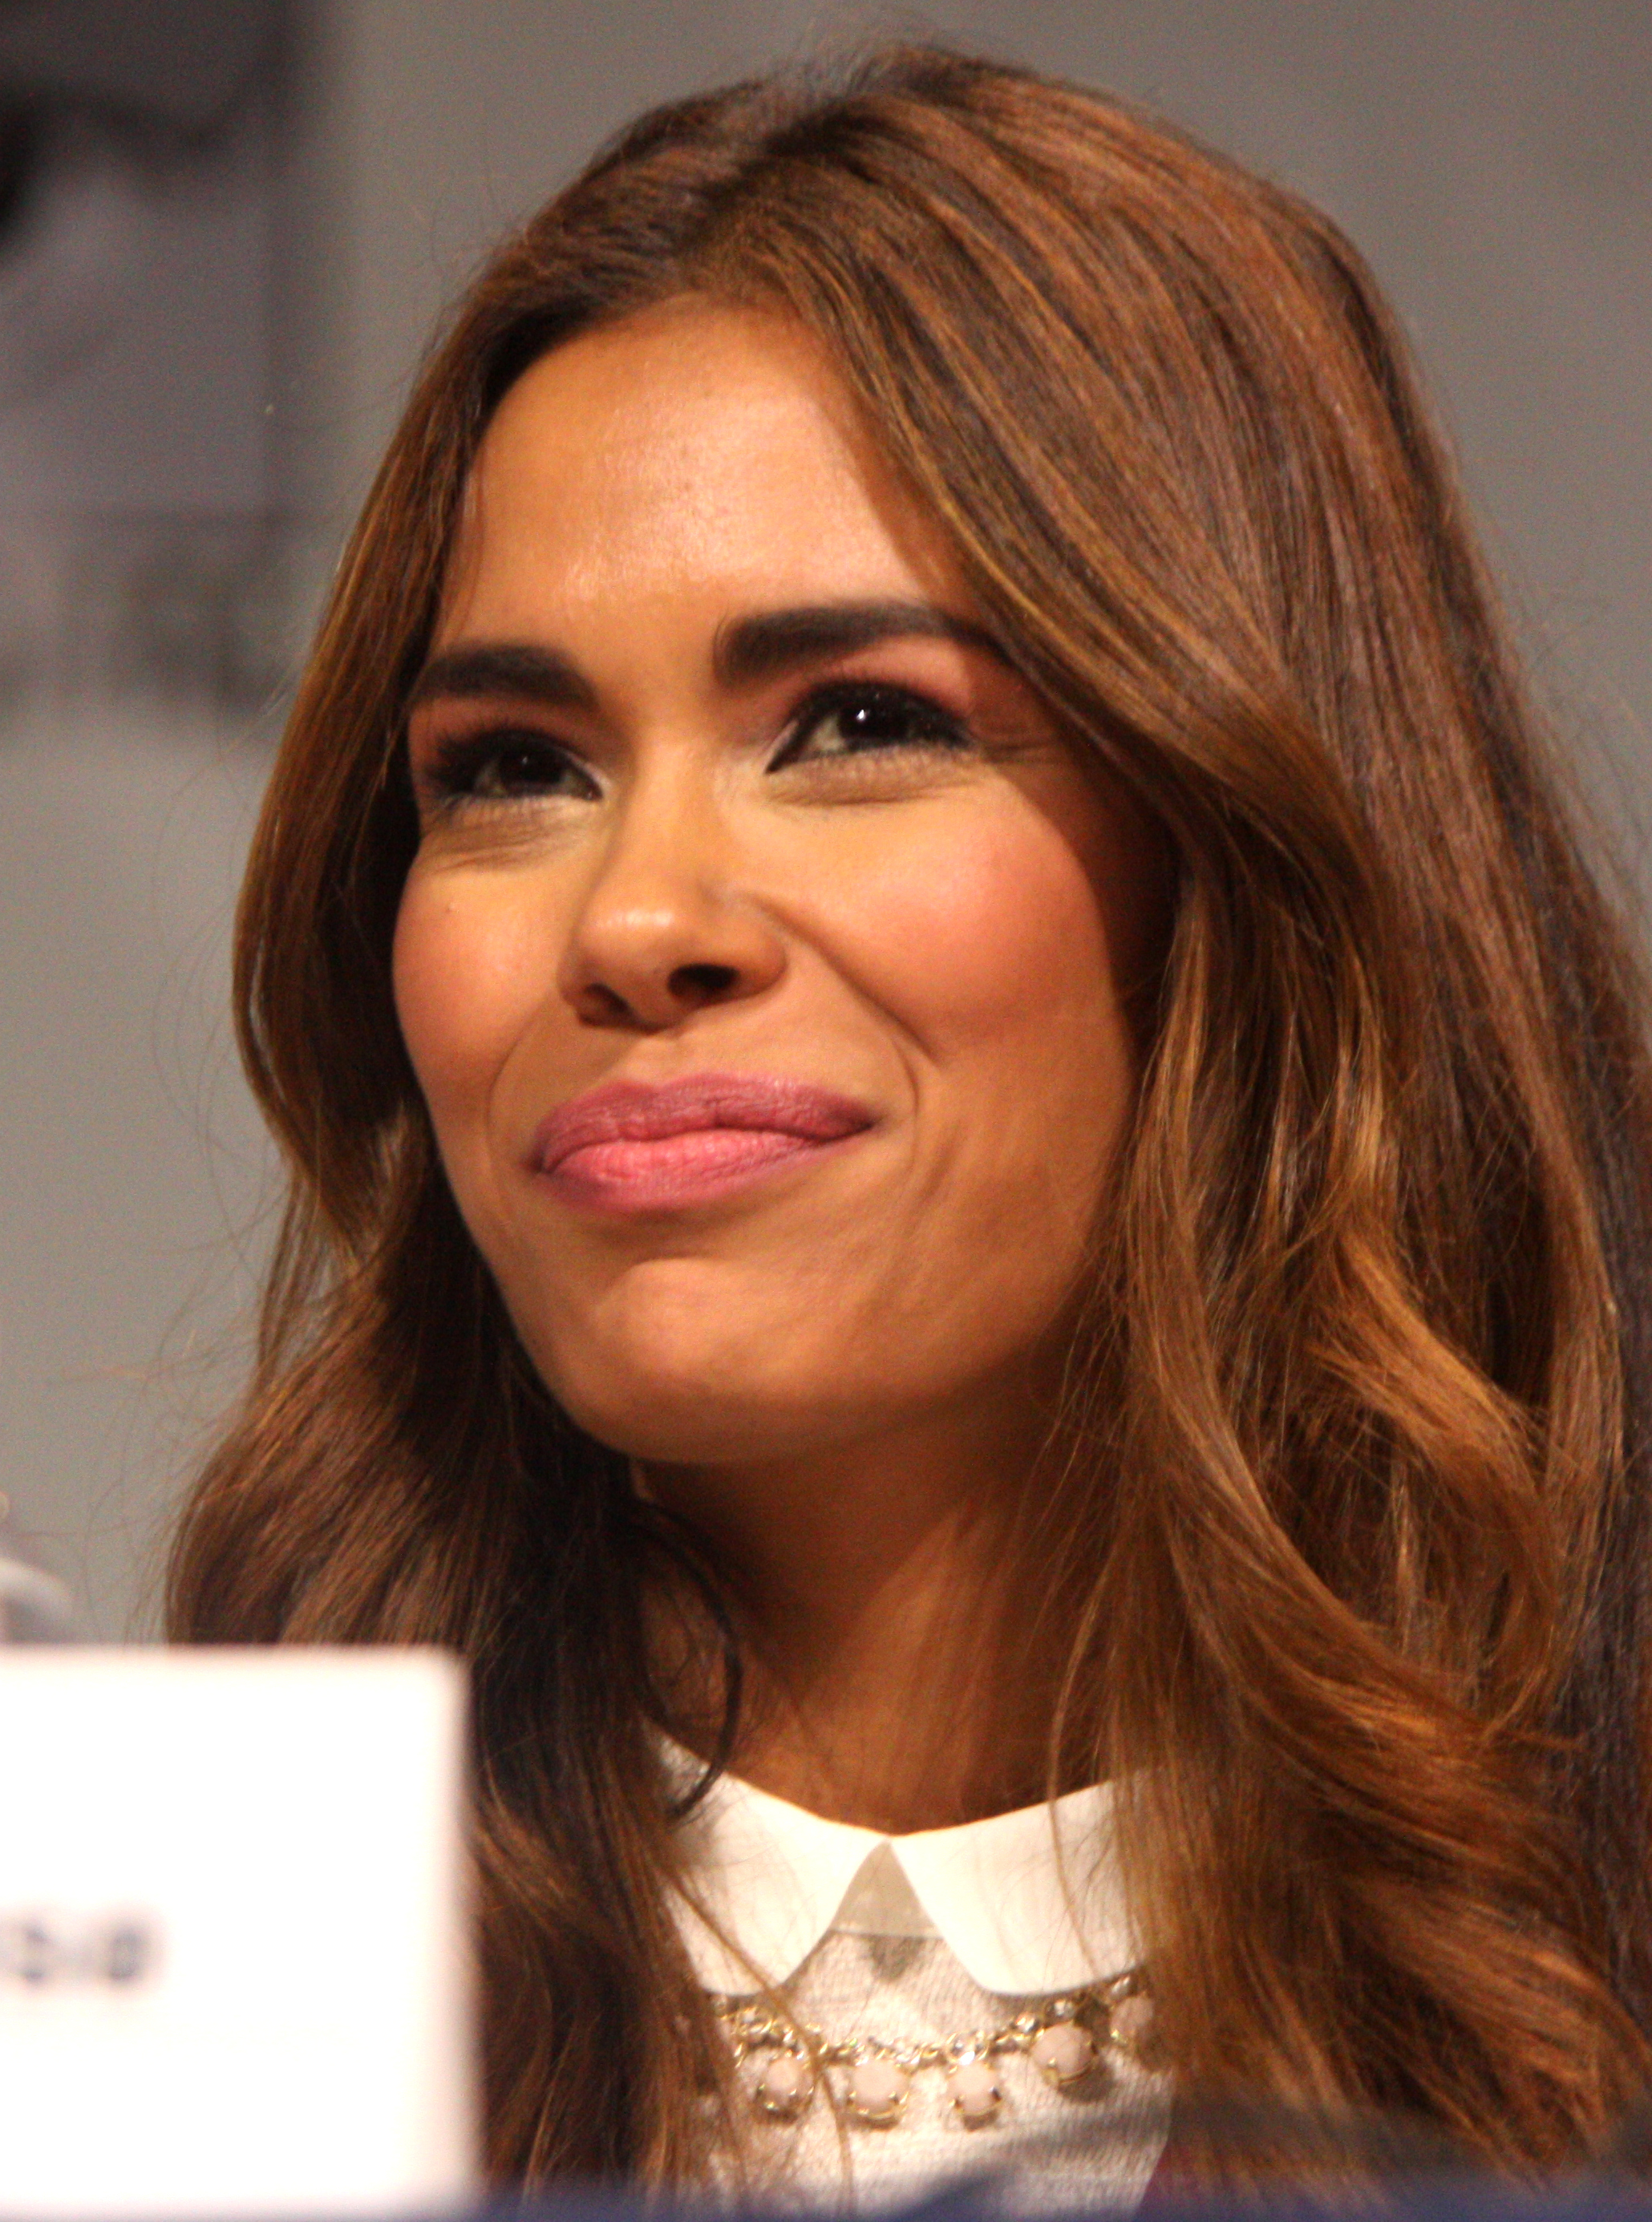 daniella alonso wallpaper